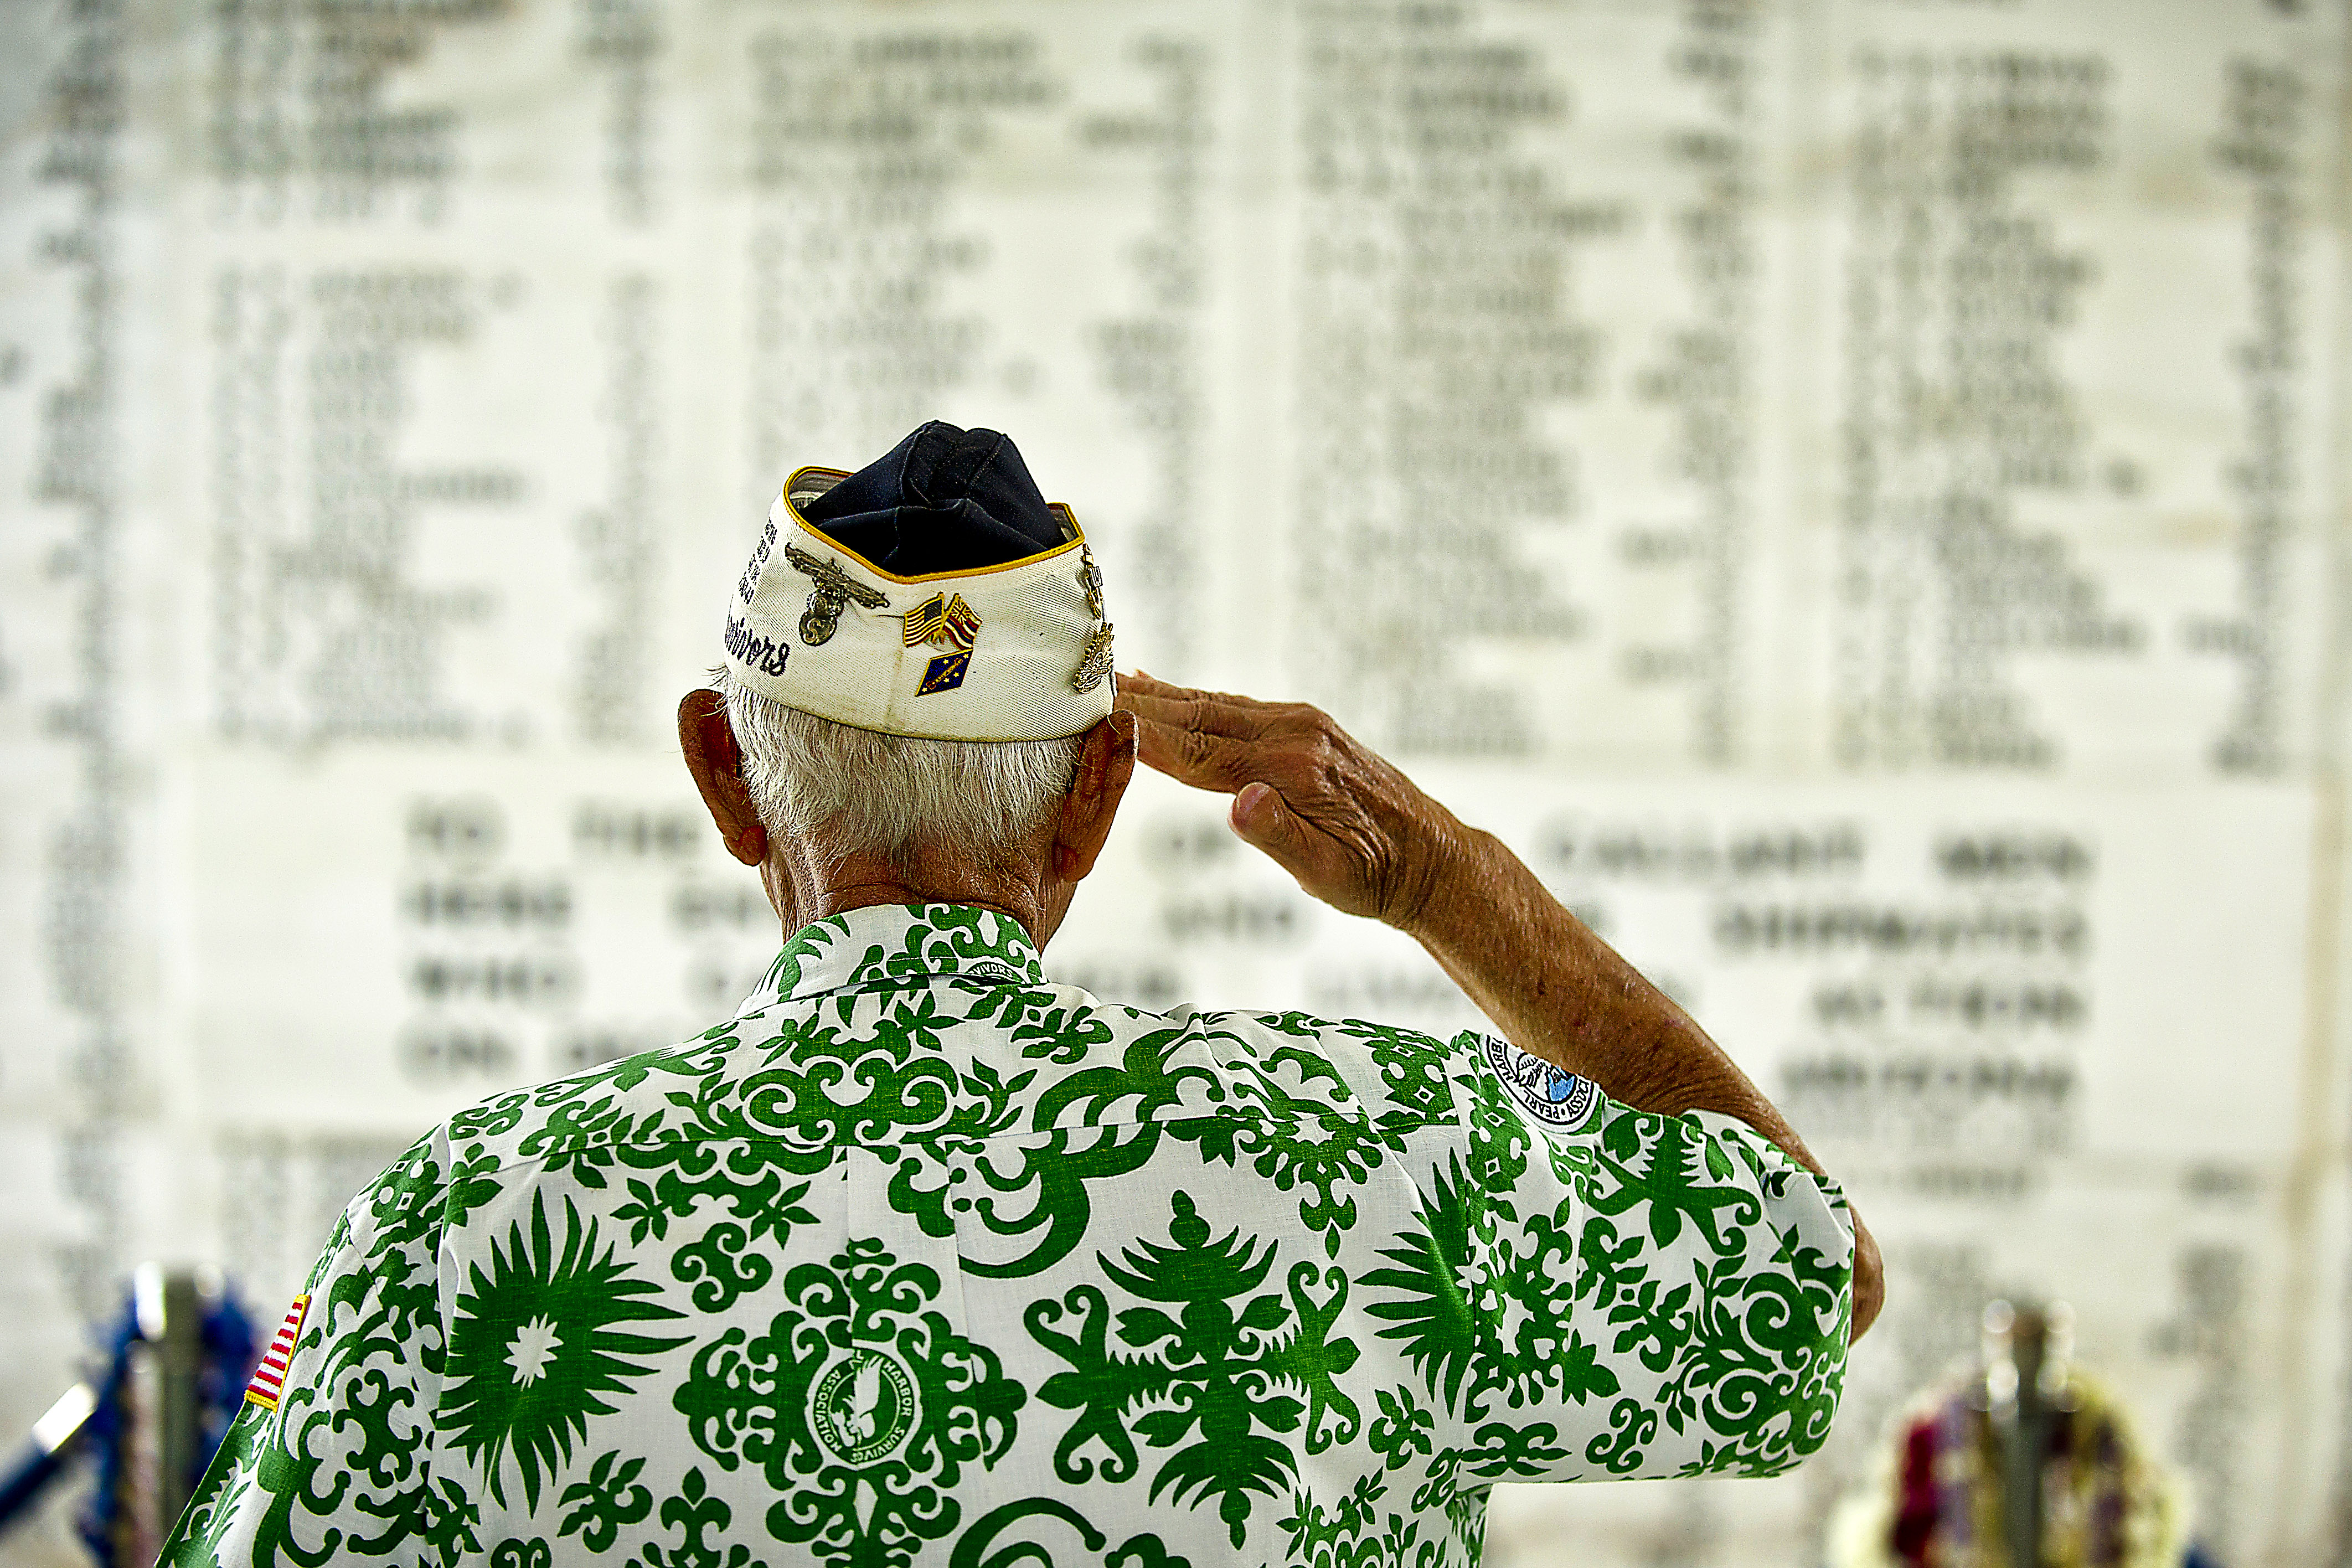 u s department of > photos > photo essays > essay view hi res photo gallery middot pearl harbor survivors